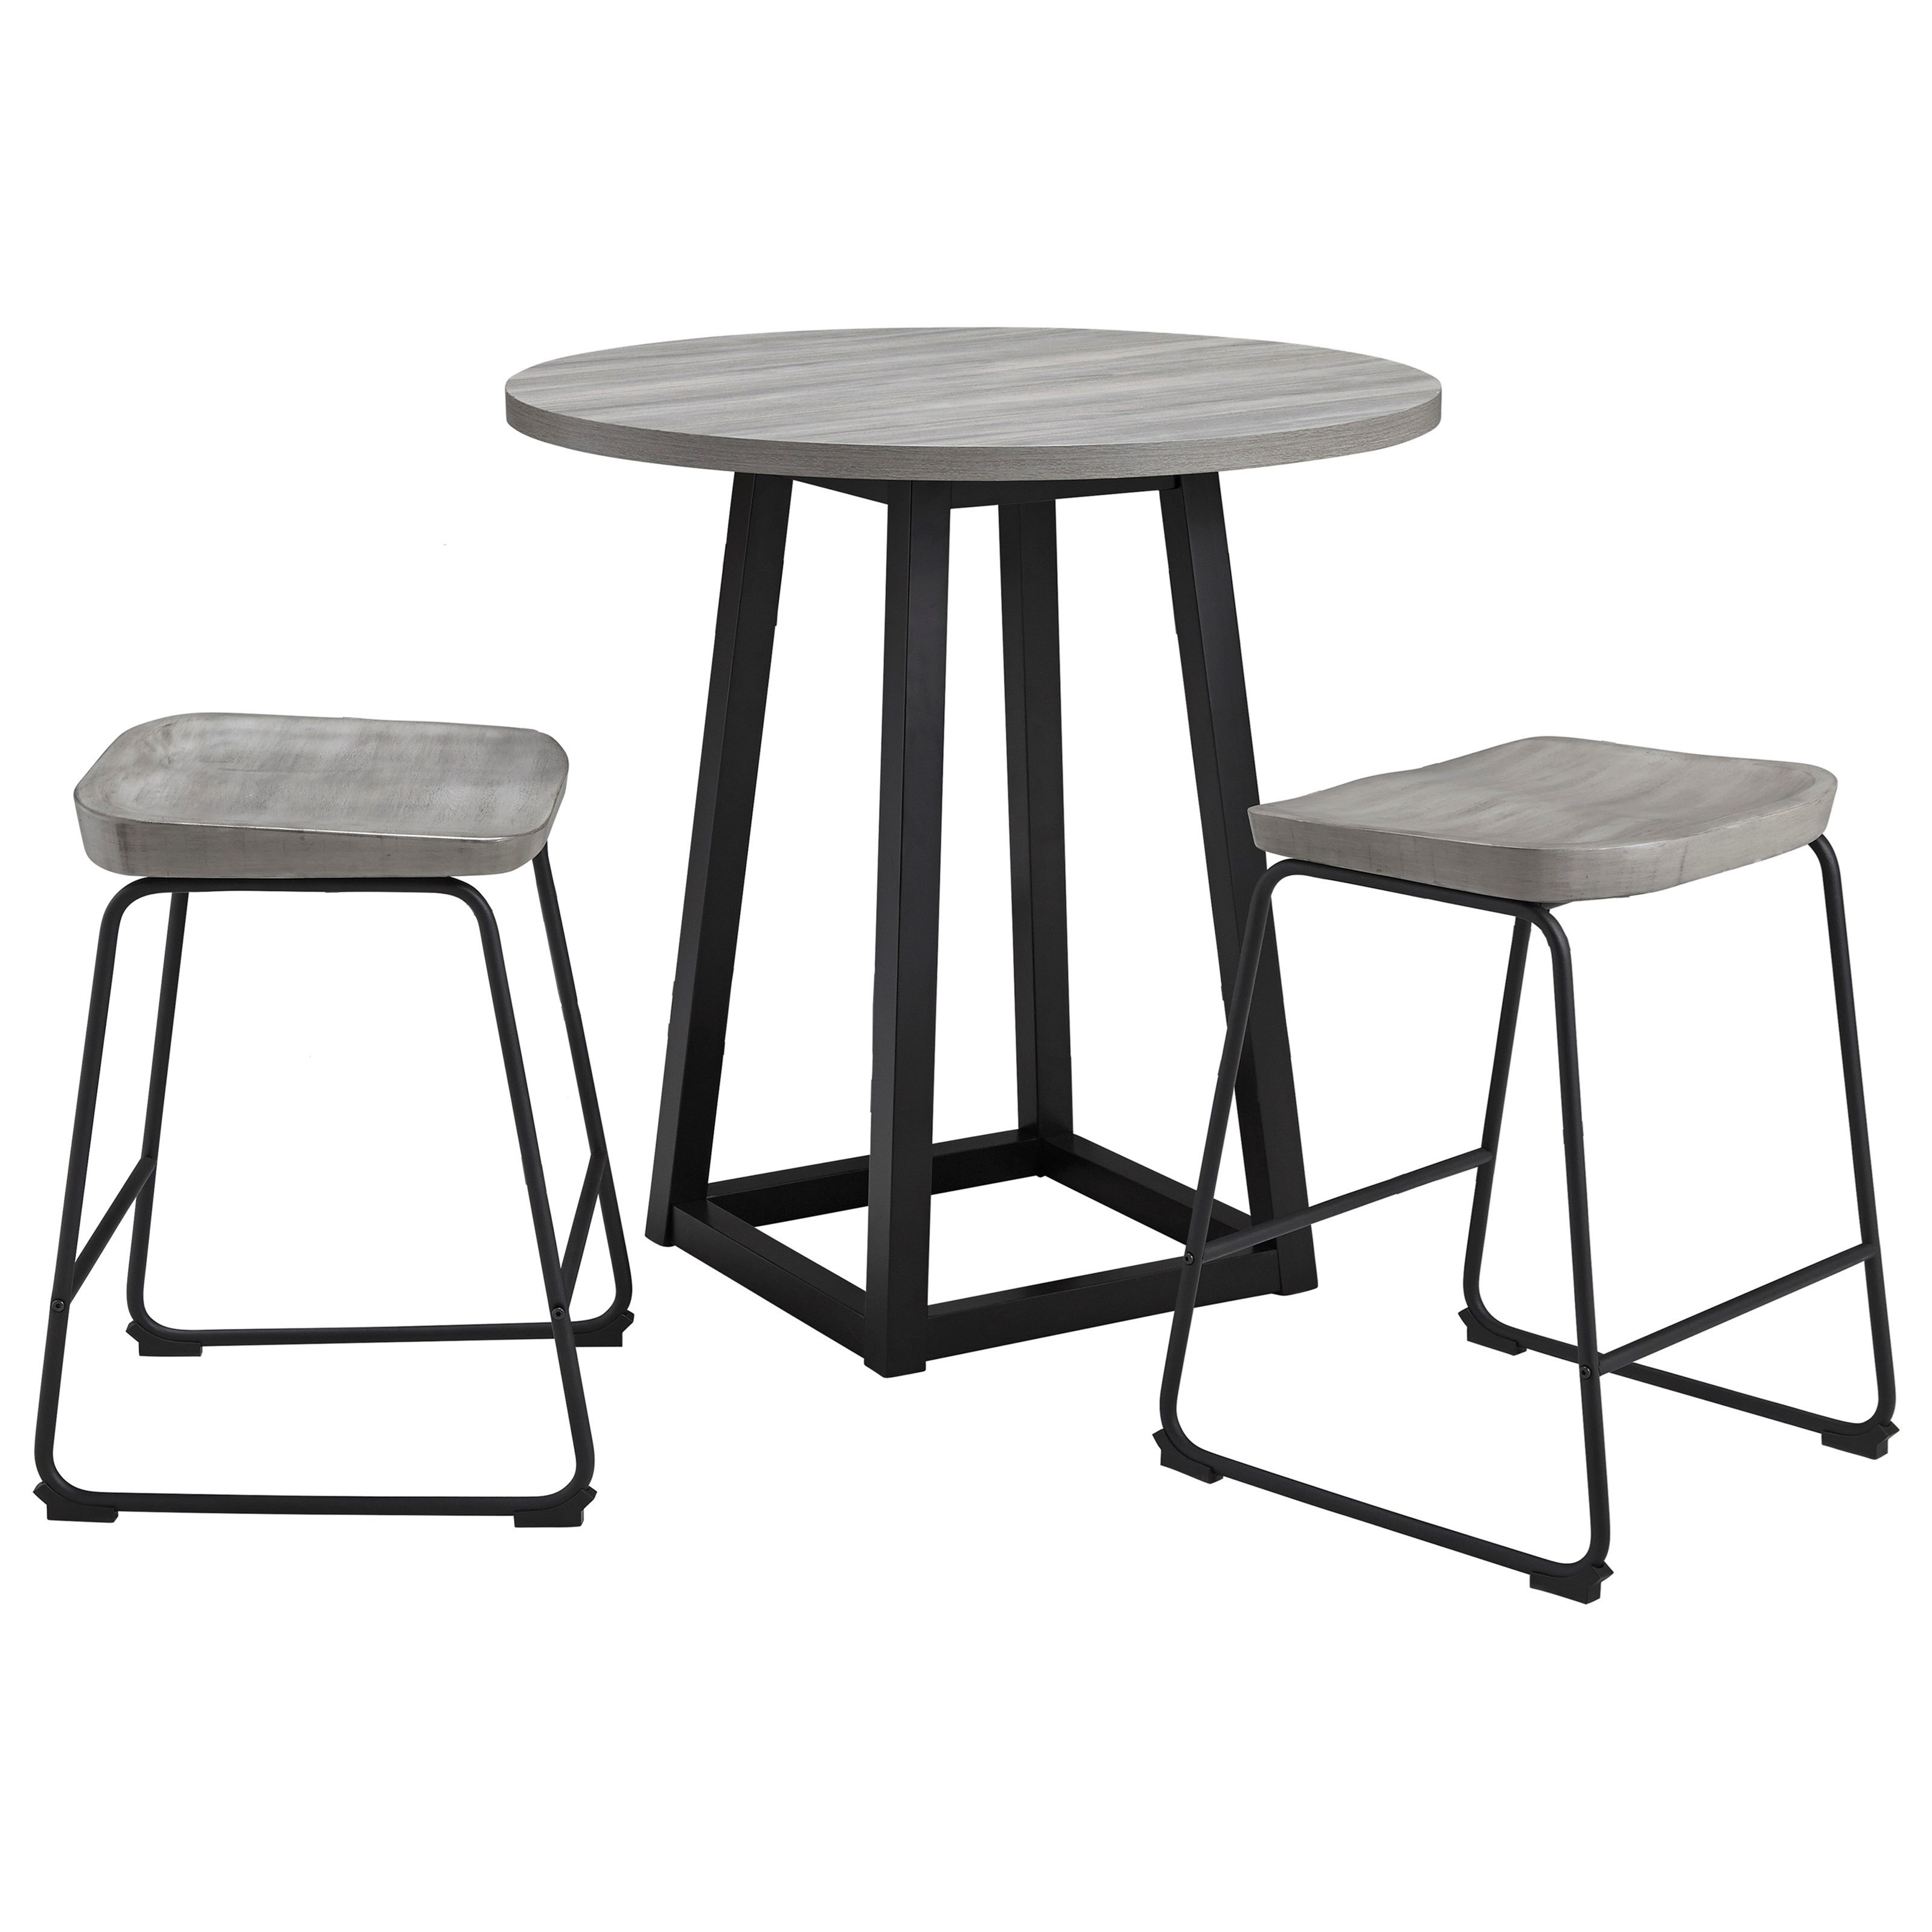 Signature Design By Ashley Showdell 3 Piece Counter Height Dining Table Set Royal Furniture Pub Table And Stool Sets